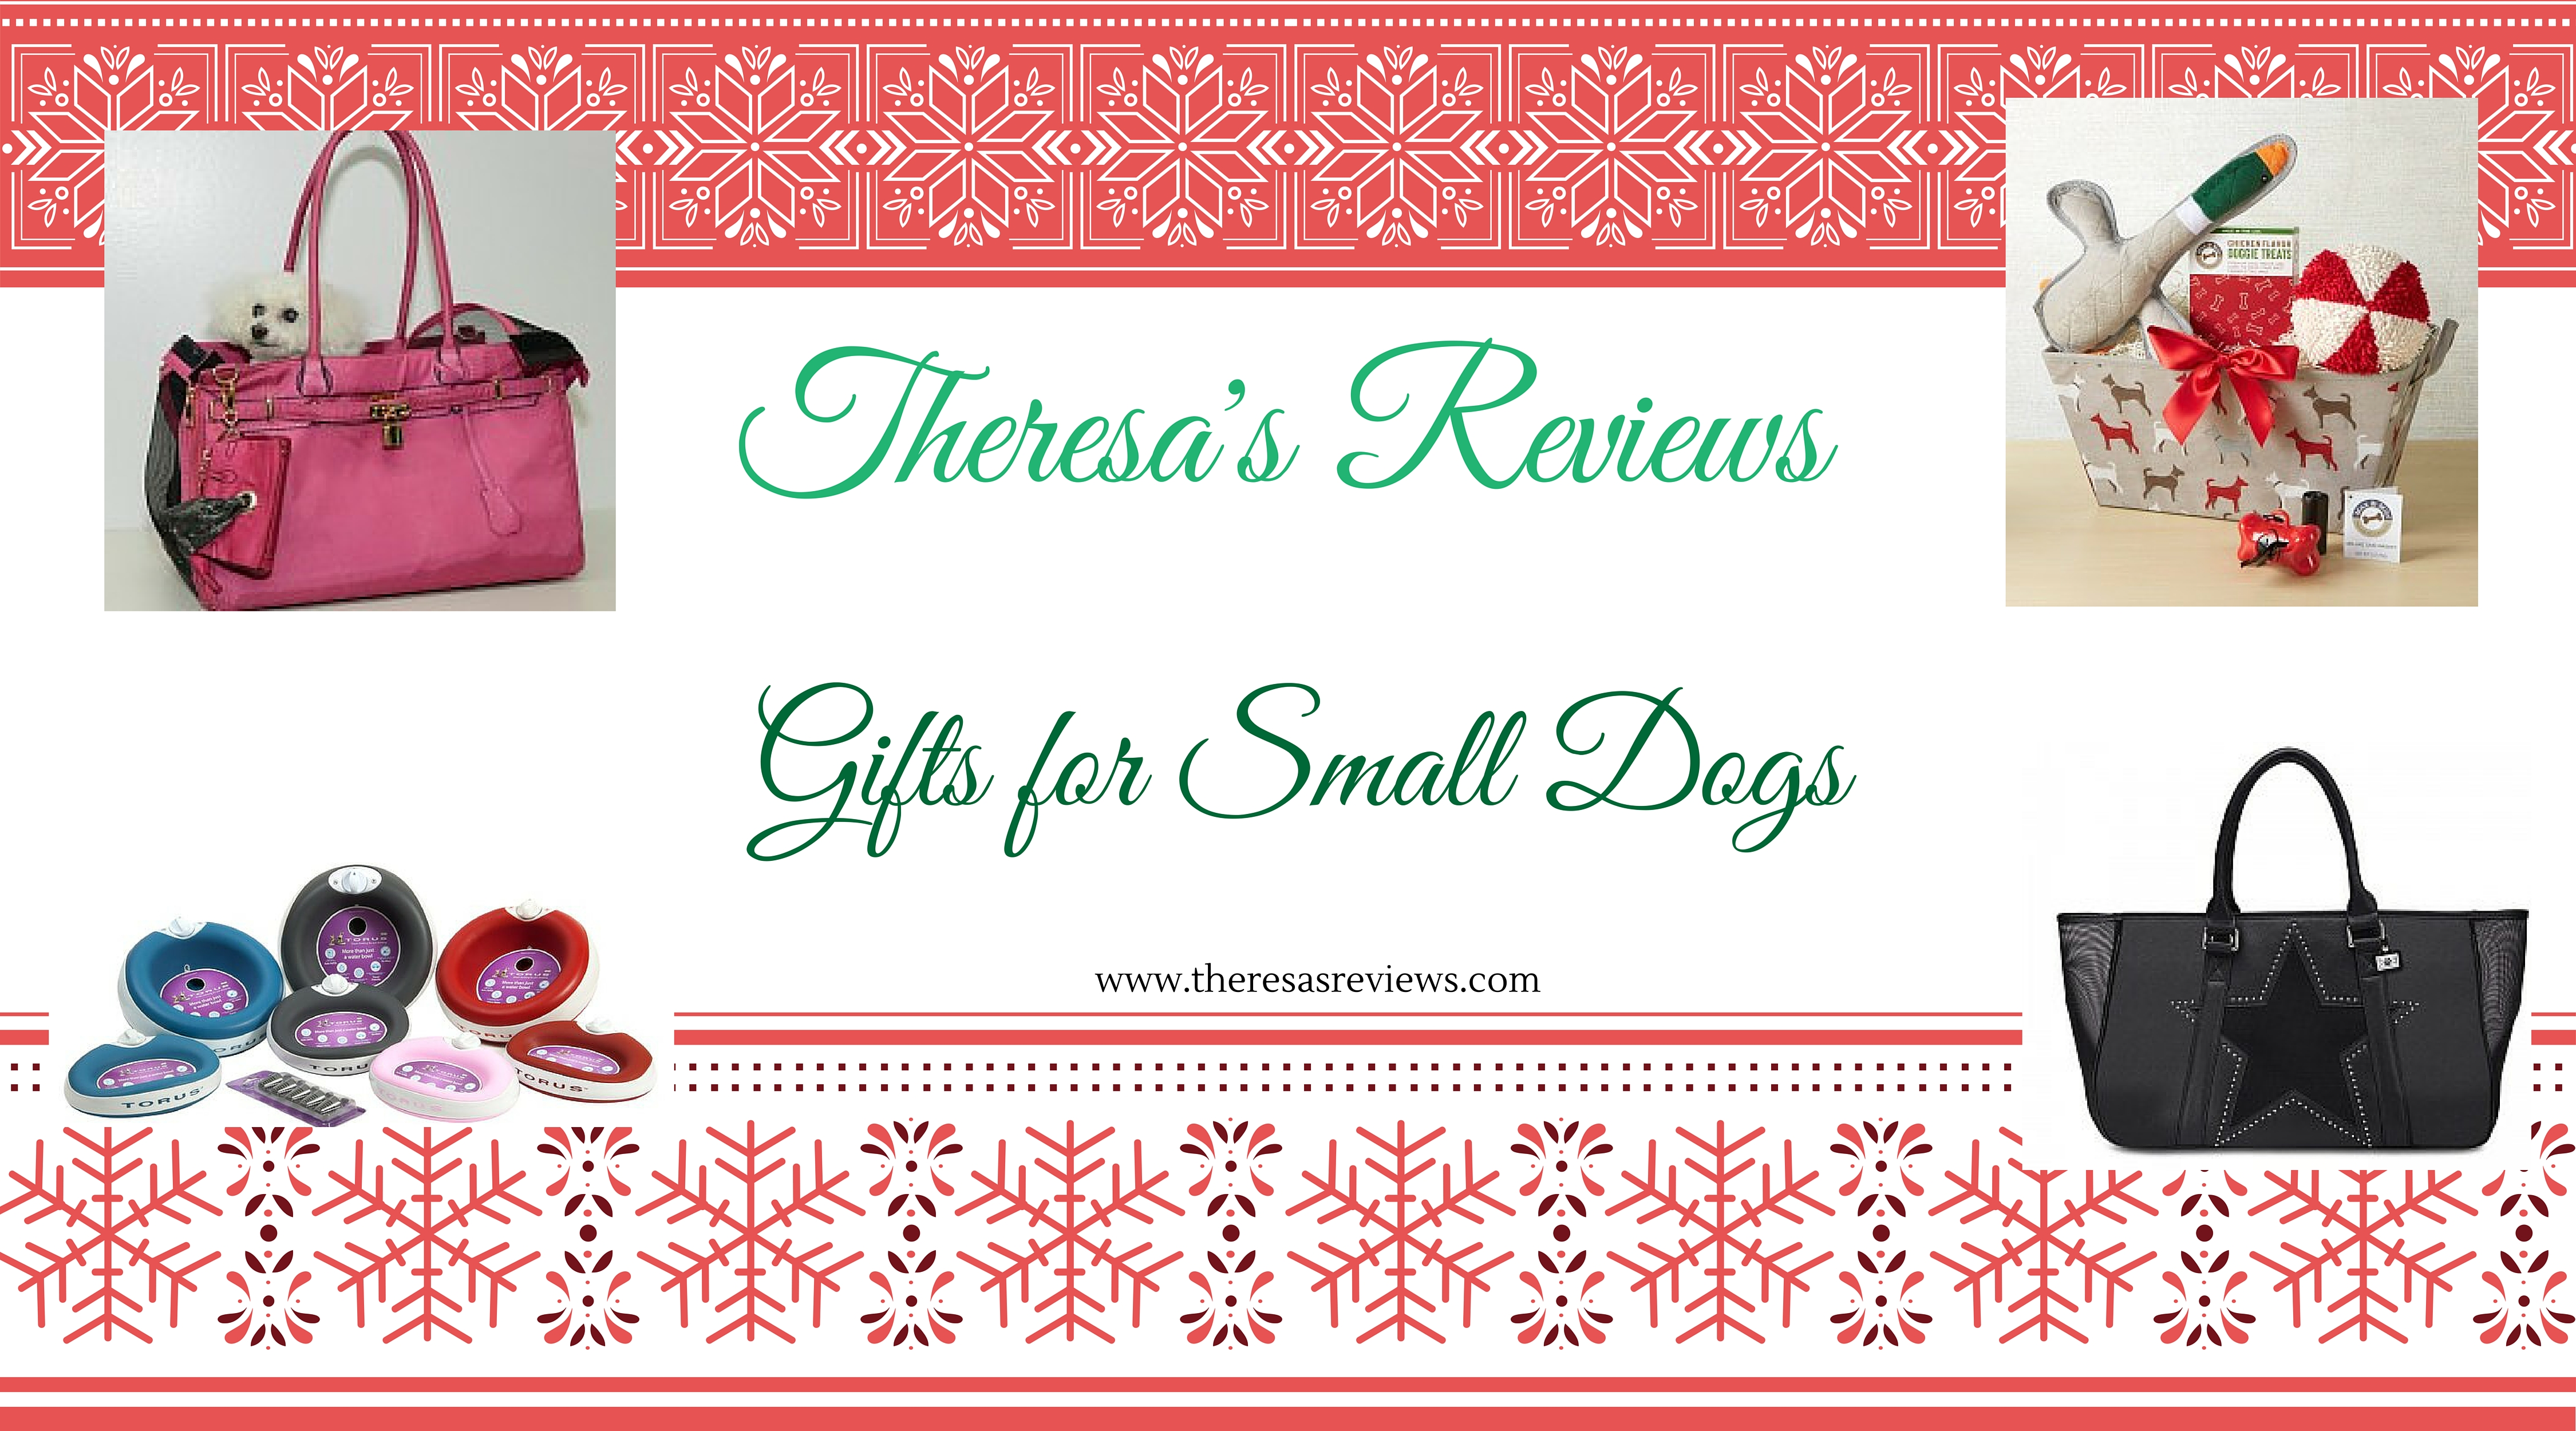 Gifts for Small Dogs - Theresa's Reviews - www.theresasreviews.com #gifts #Christmas #giftguide #holidays